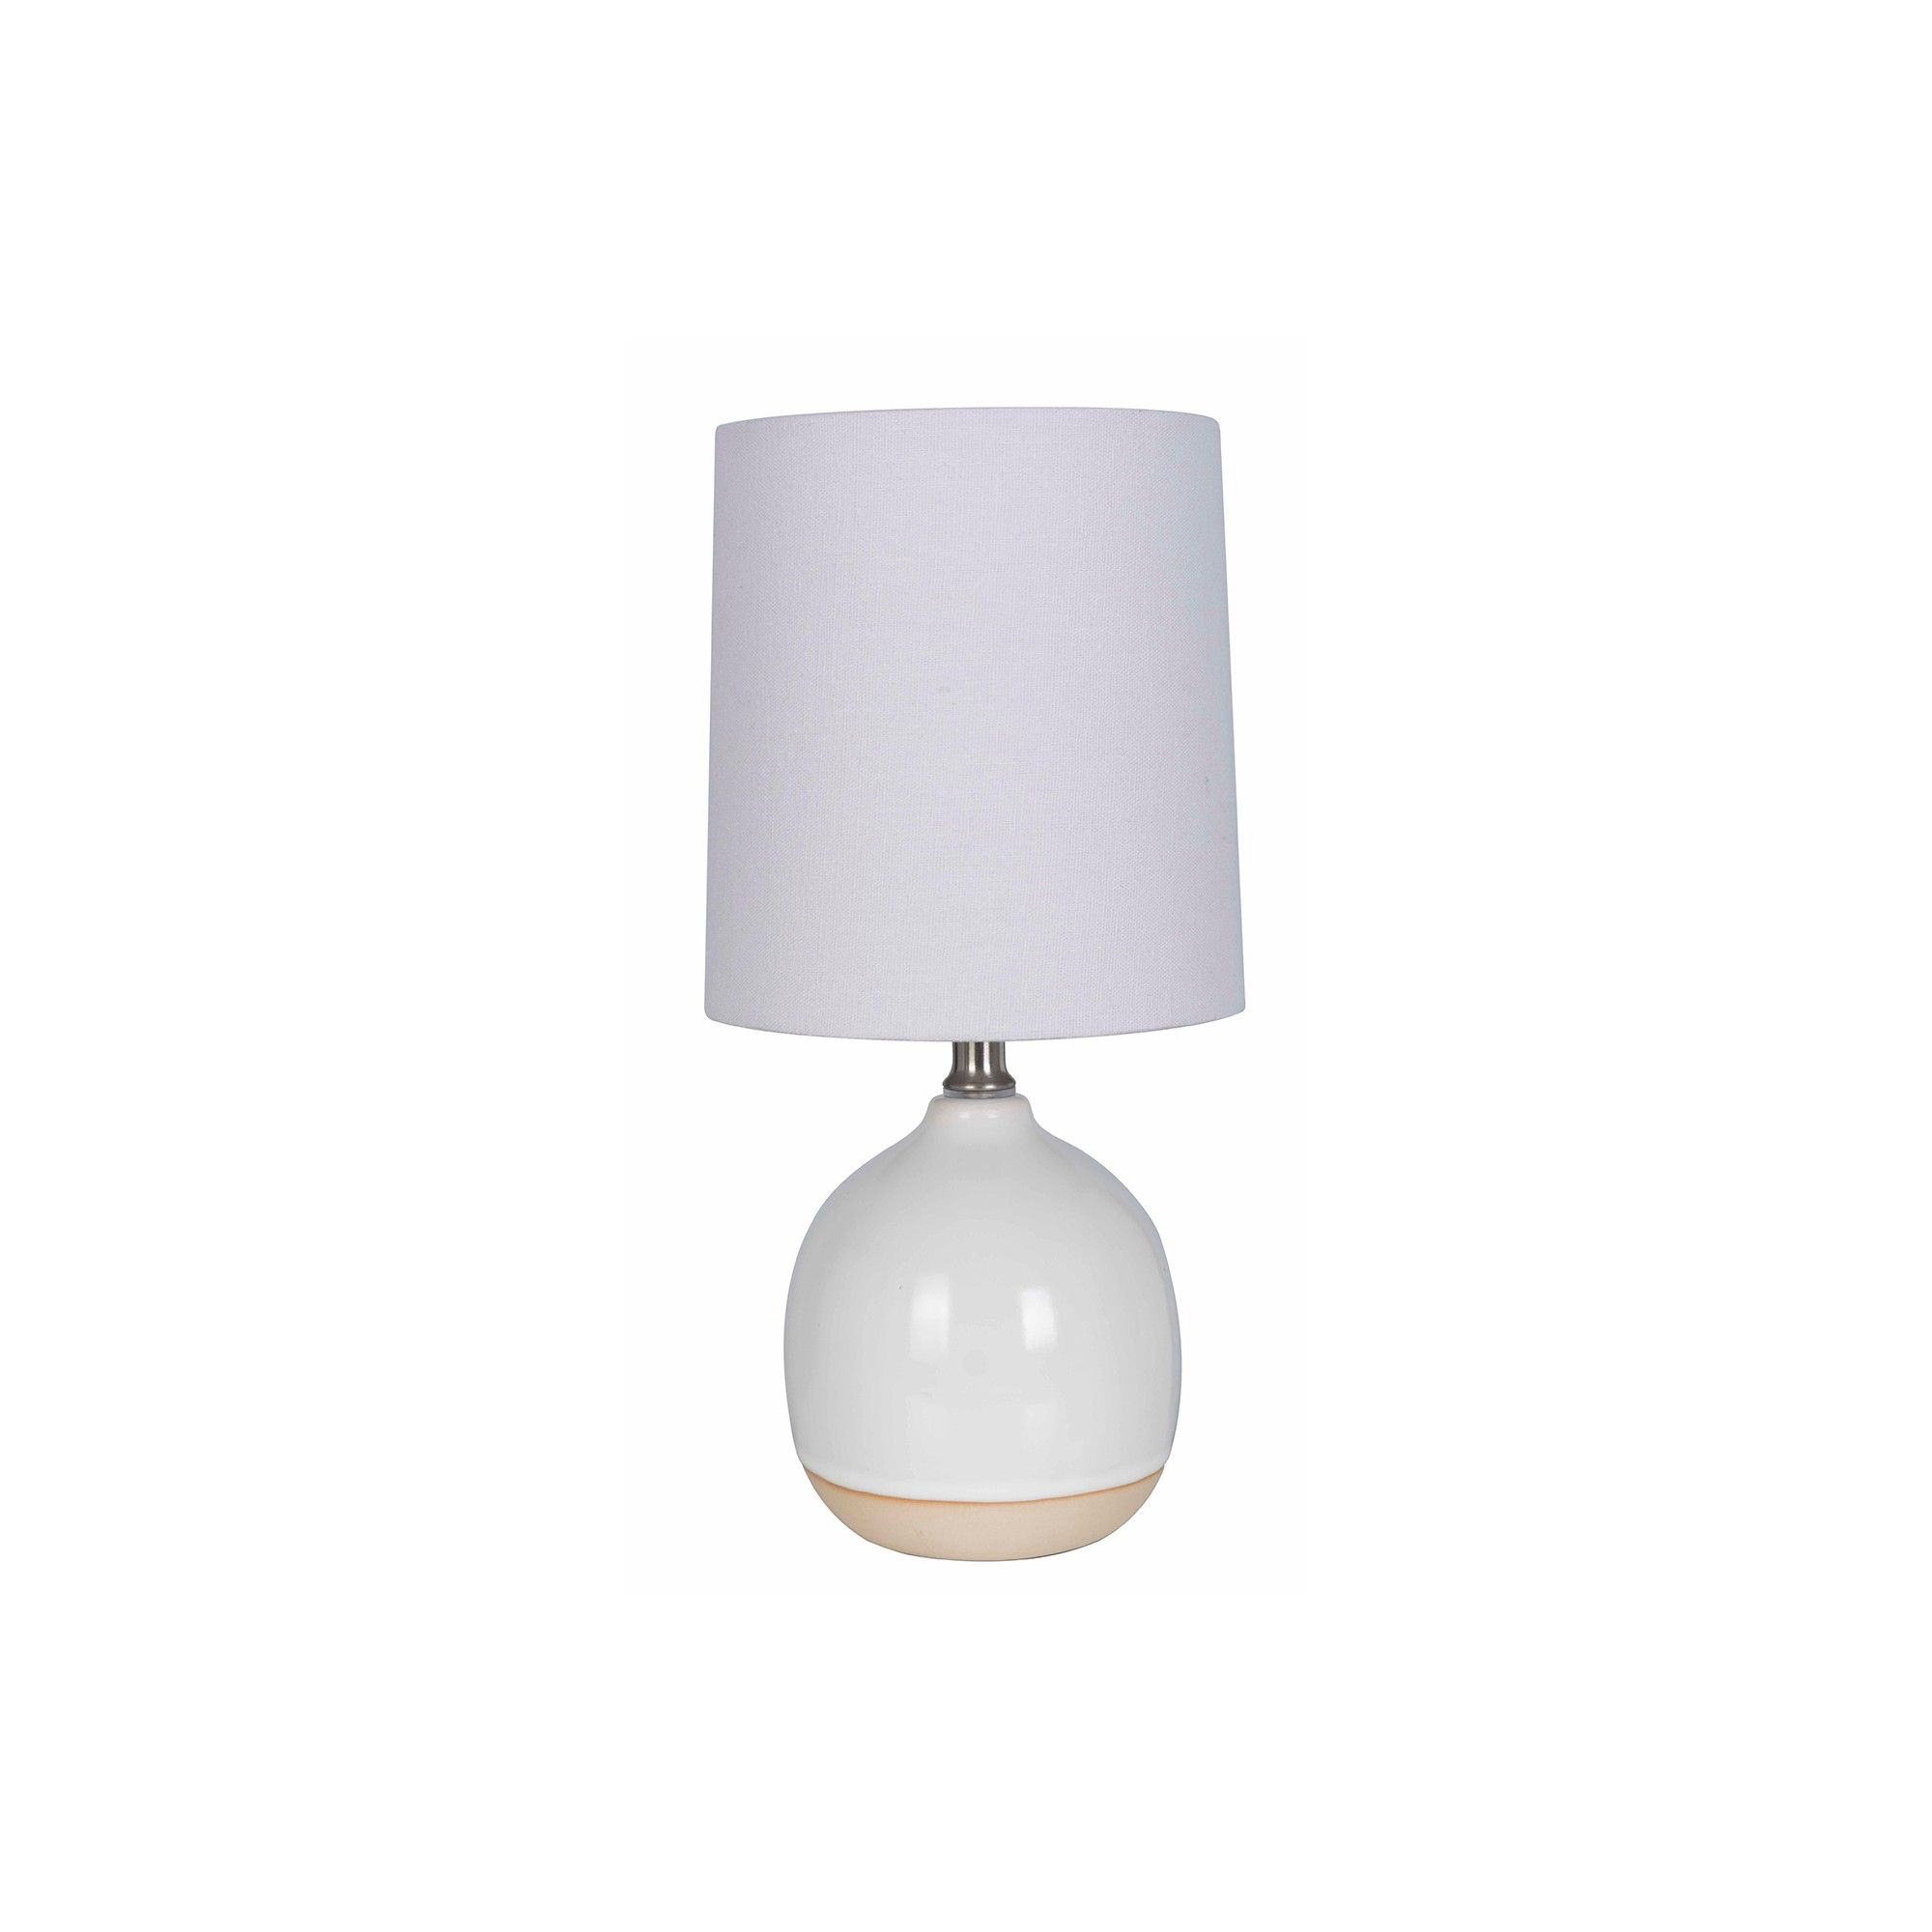 Round Ceramic Table Lamp White Lamp Only Threshold Table Lamp Ceramic Table Lamps White Table Lamp